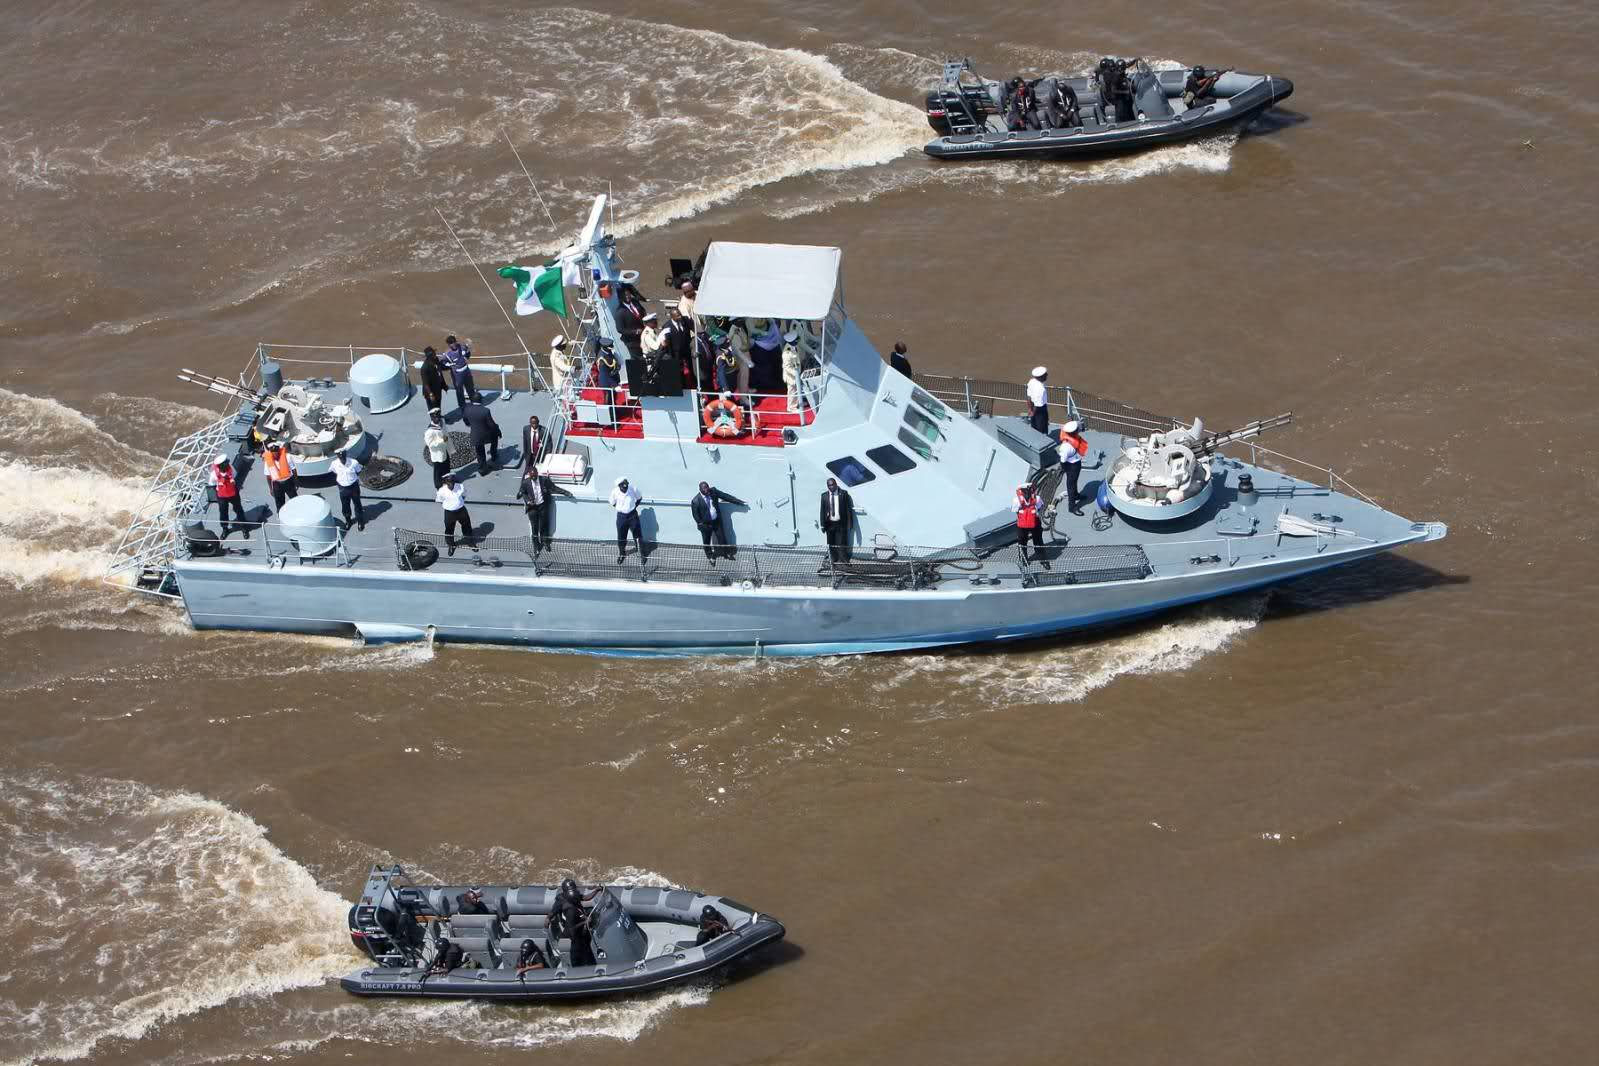 Navy impounds 900 bags of smuggled rice, arrests 4 suspects